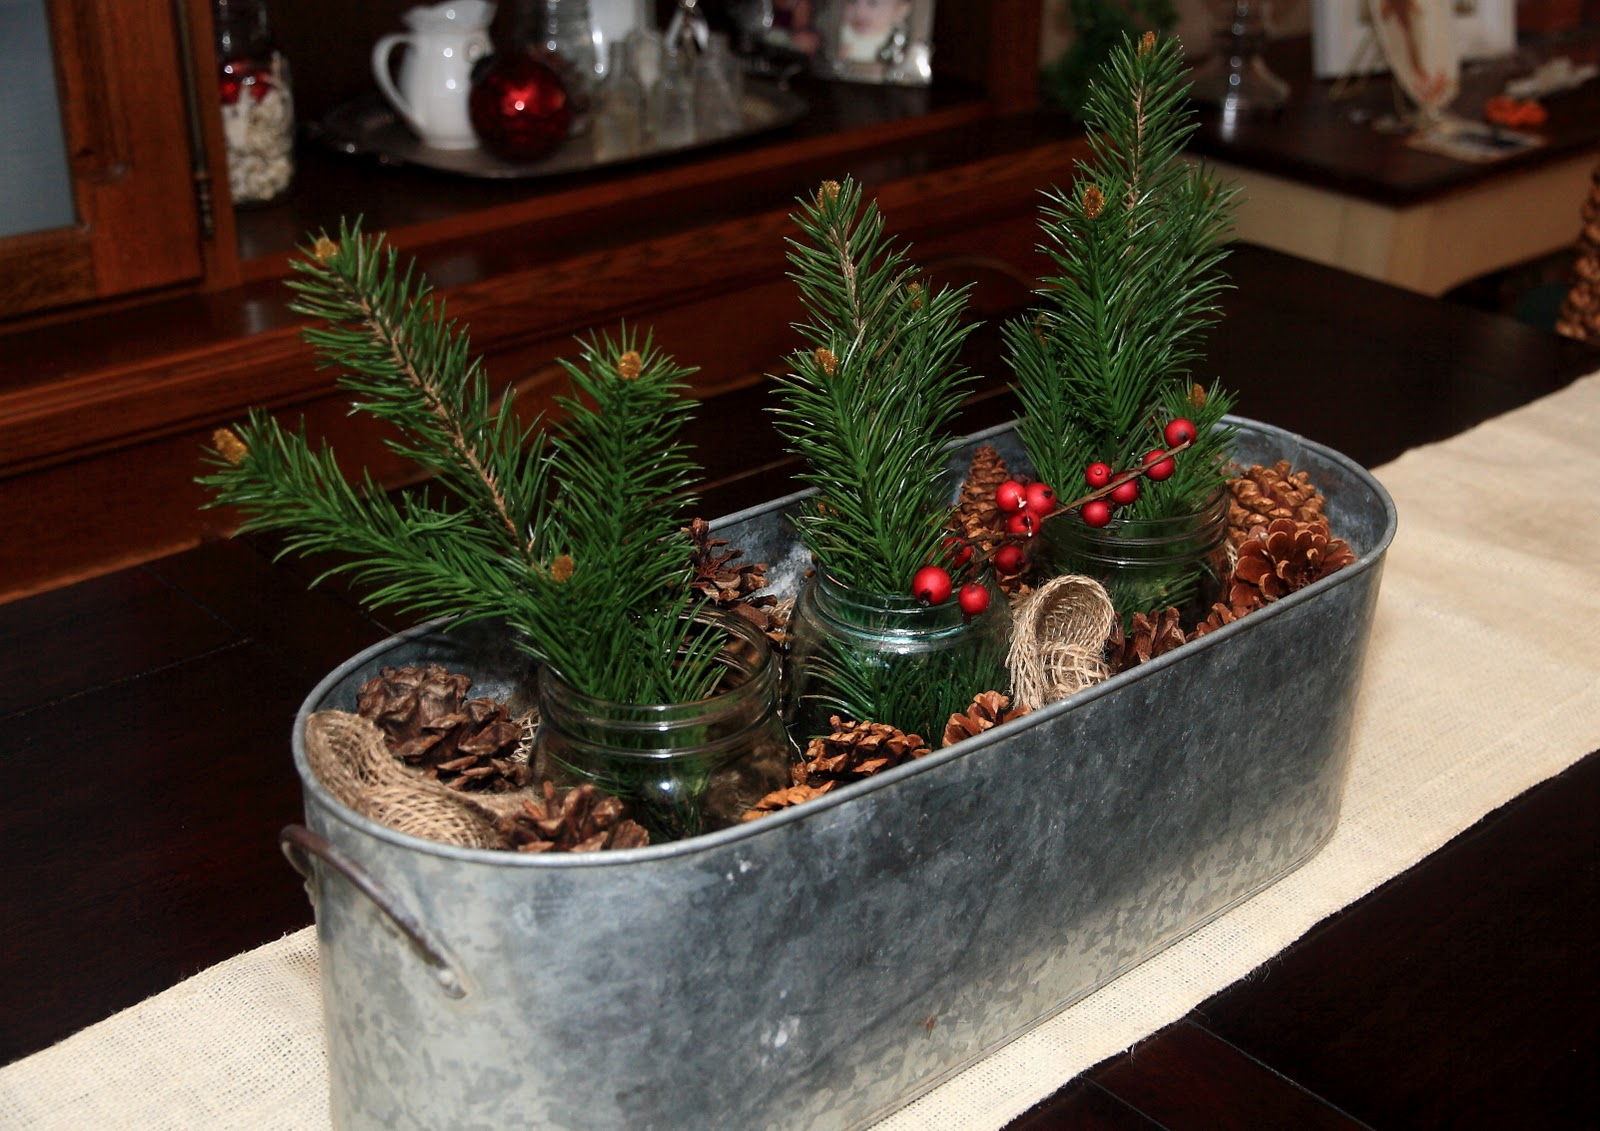 Christmas Table Centerpiece Inspirations - Harbor Farm Wreaths